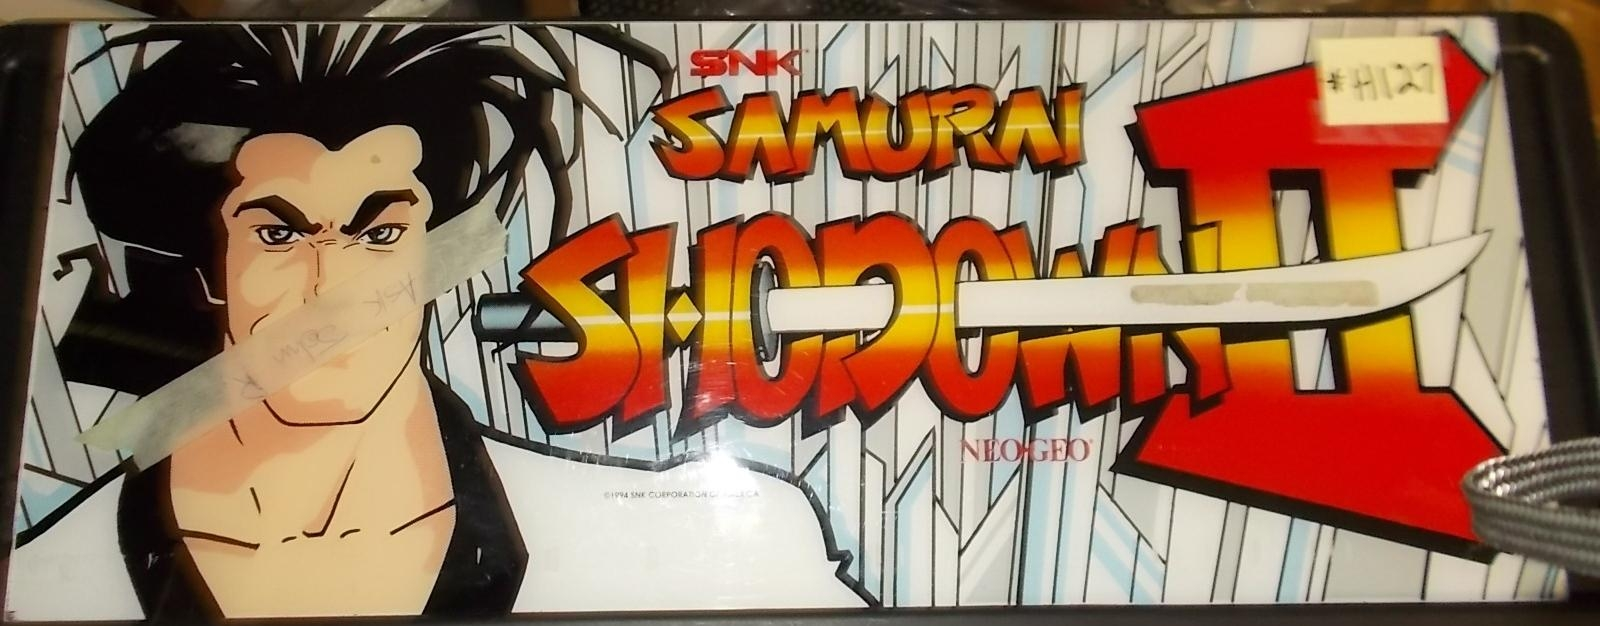 Samurai Shodown Arcade Machine Game Overhead Marquee Header For With Regard To Arcade Wall Art (View 17 of 20)